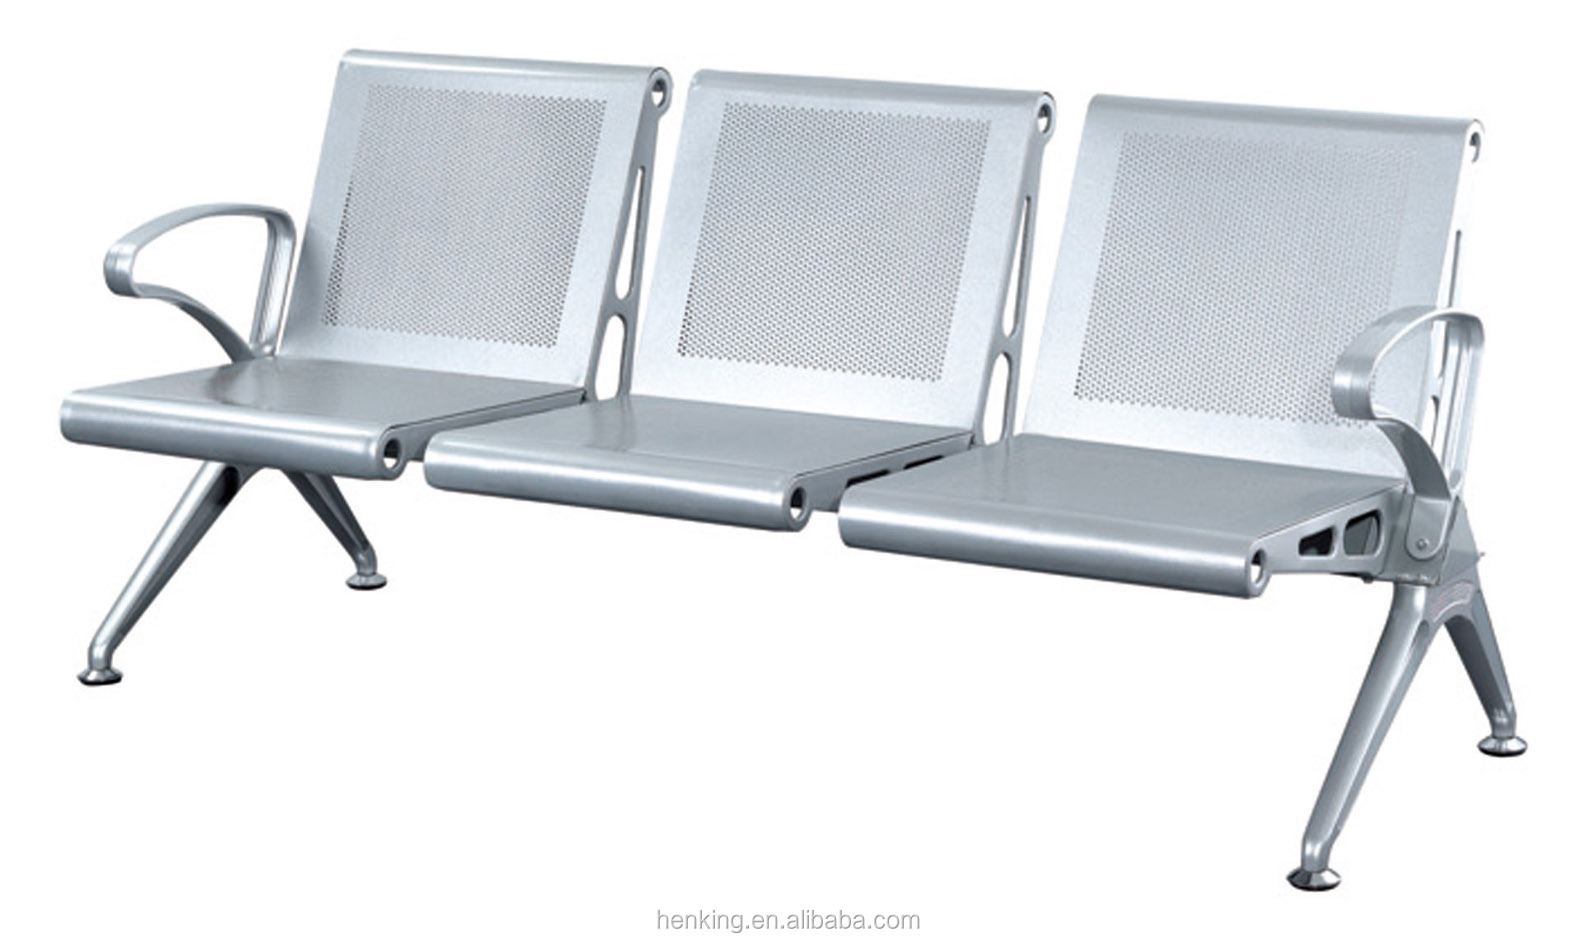 steel airport chair leather and ottoman set henking public metal seating bench chairs h916 3p